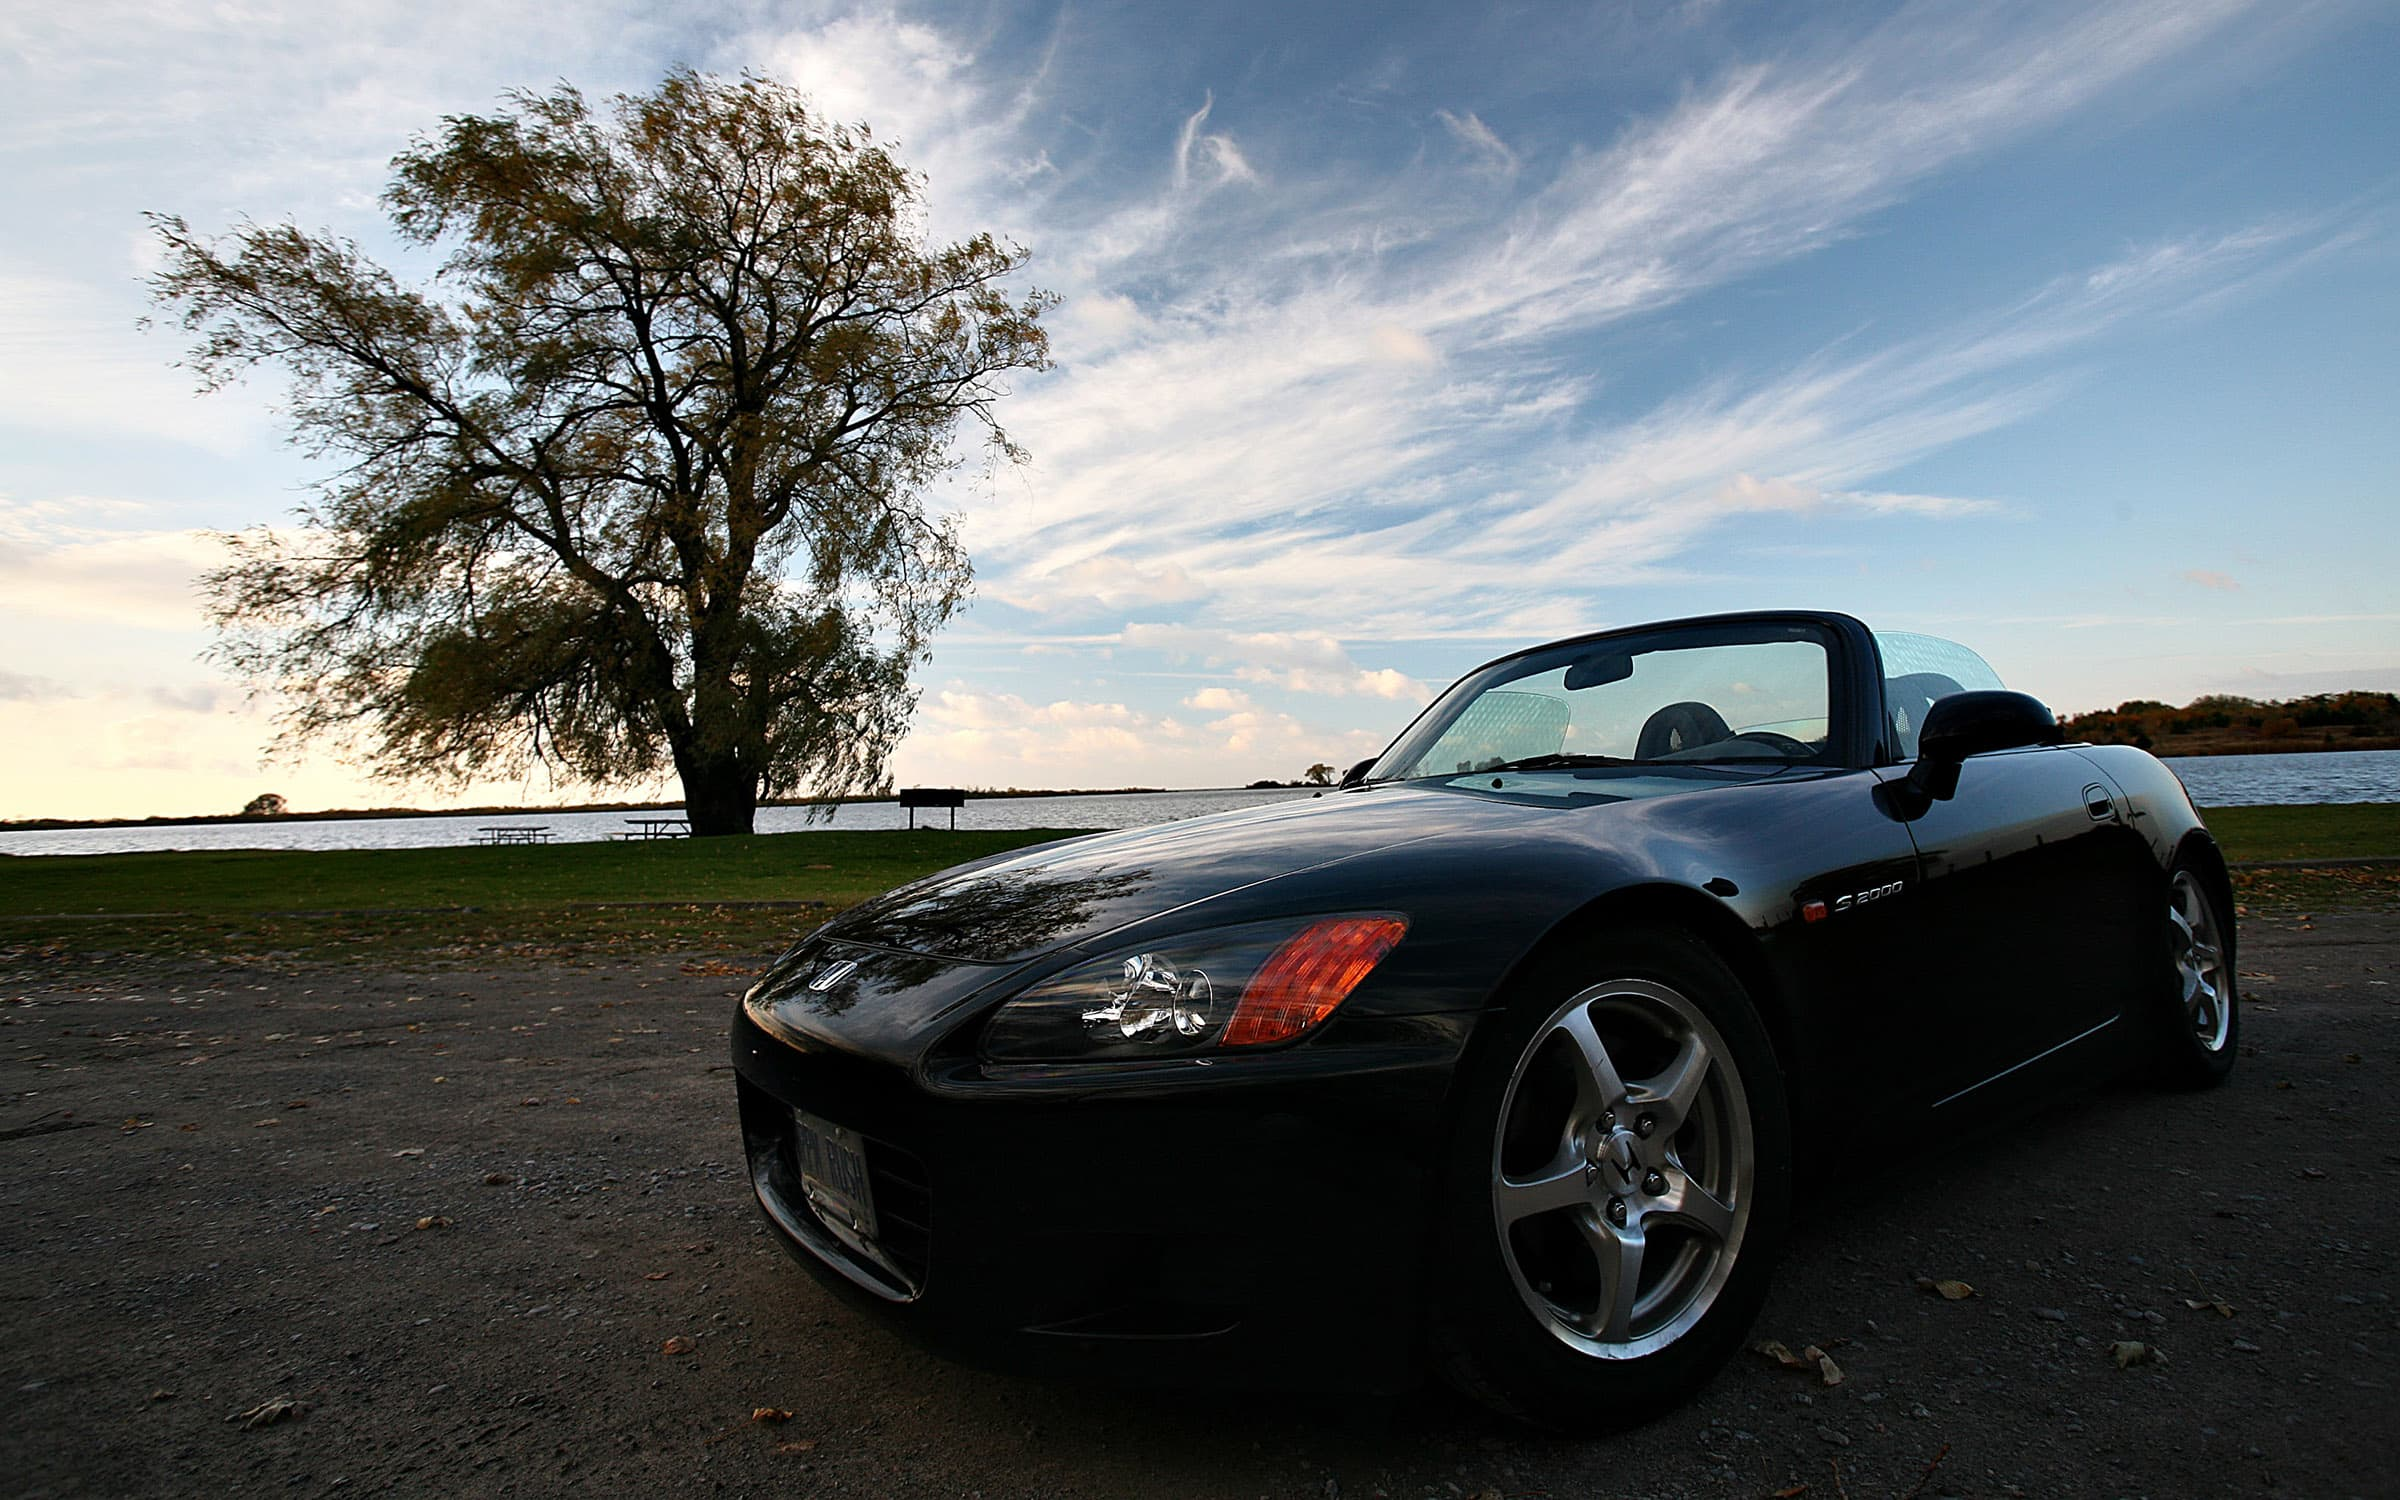 2003 Honda S2000 High Resolution wallpapers